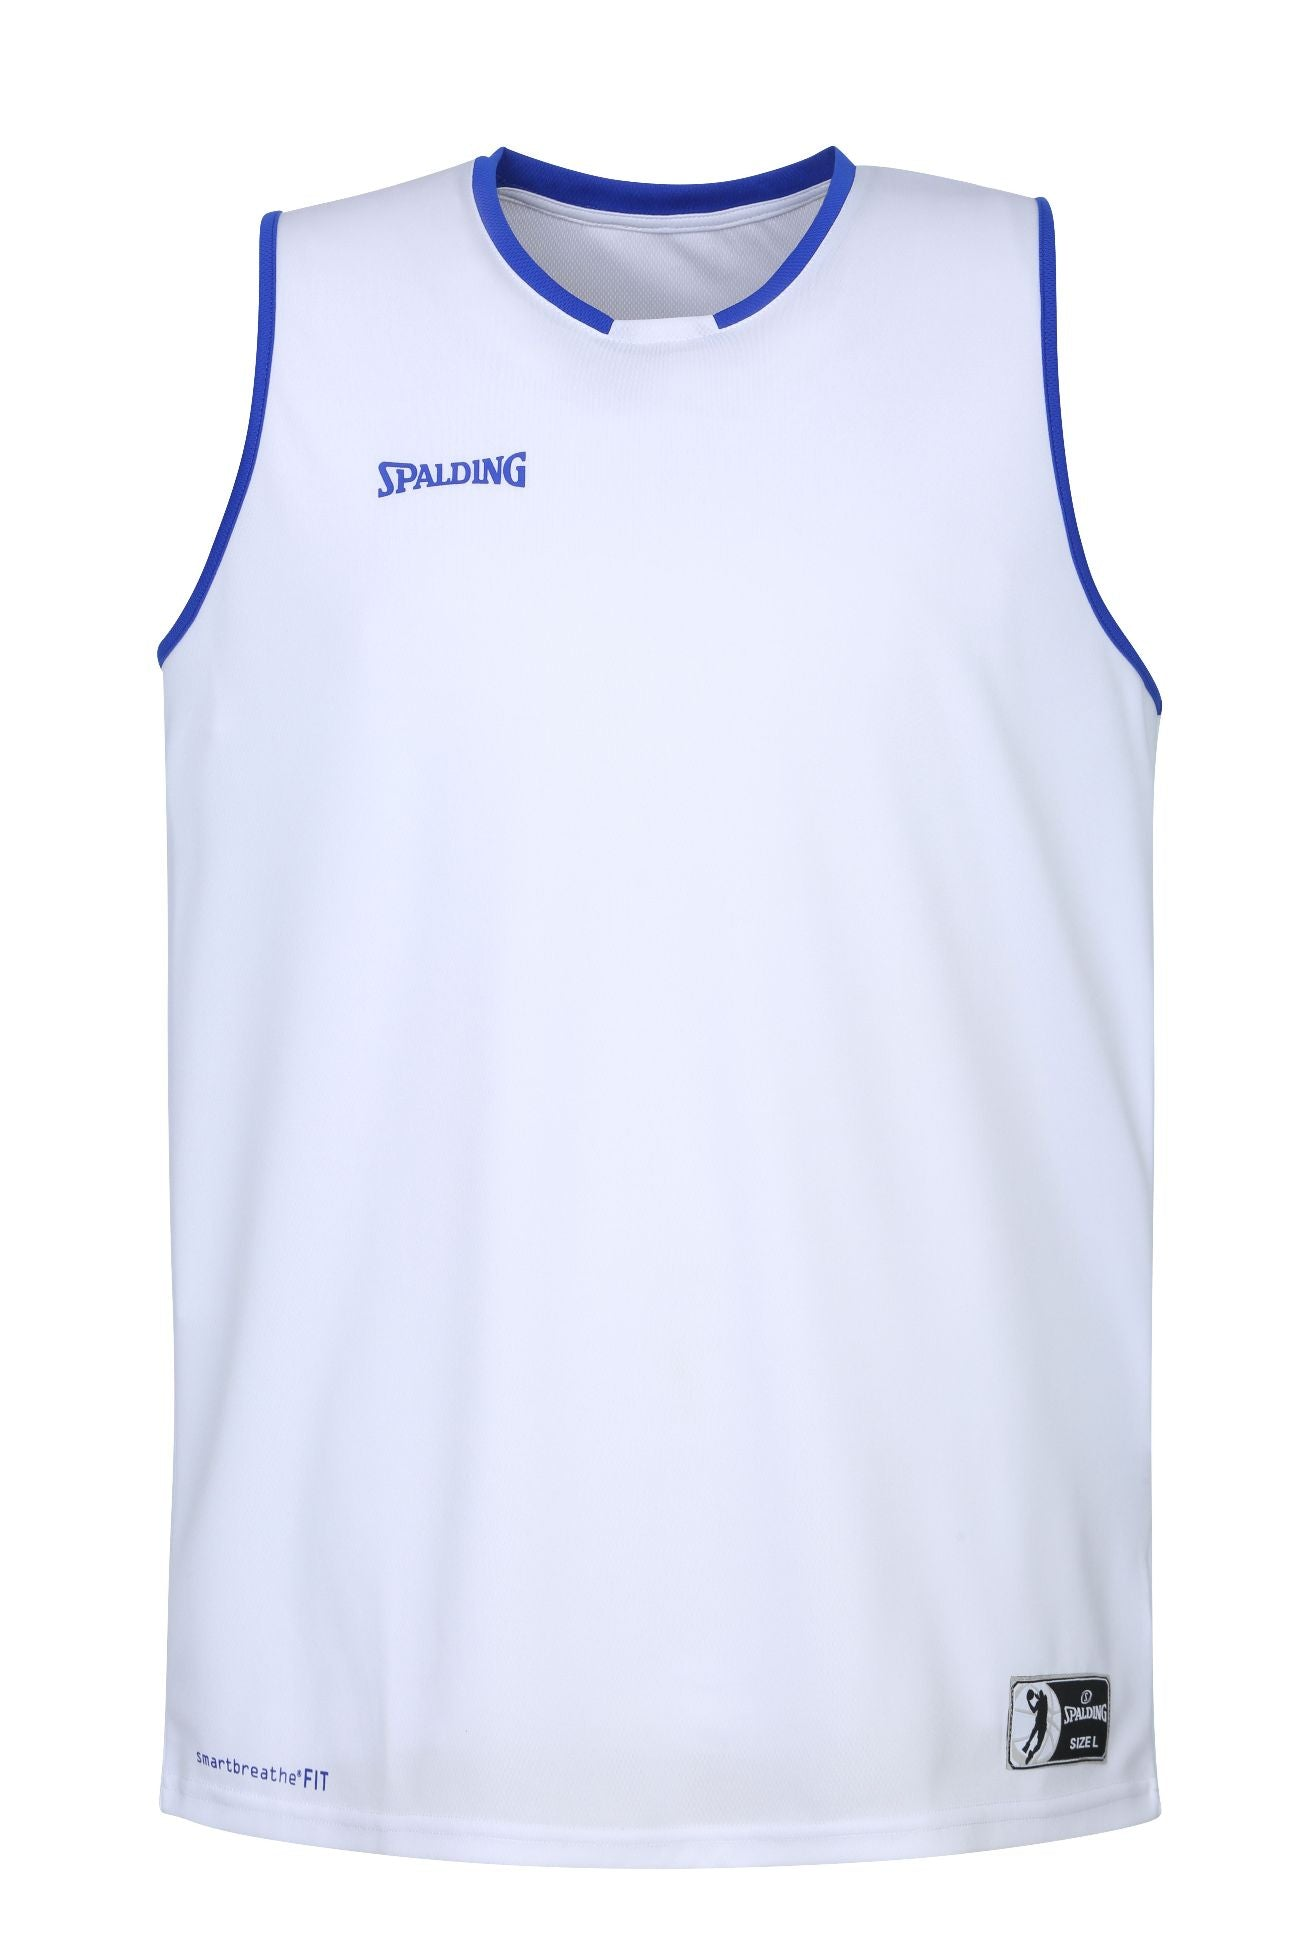 Teamwear - Spalding Kids' Move Jerseys - White/Royal Blue - SP-3002140-04